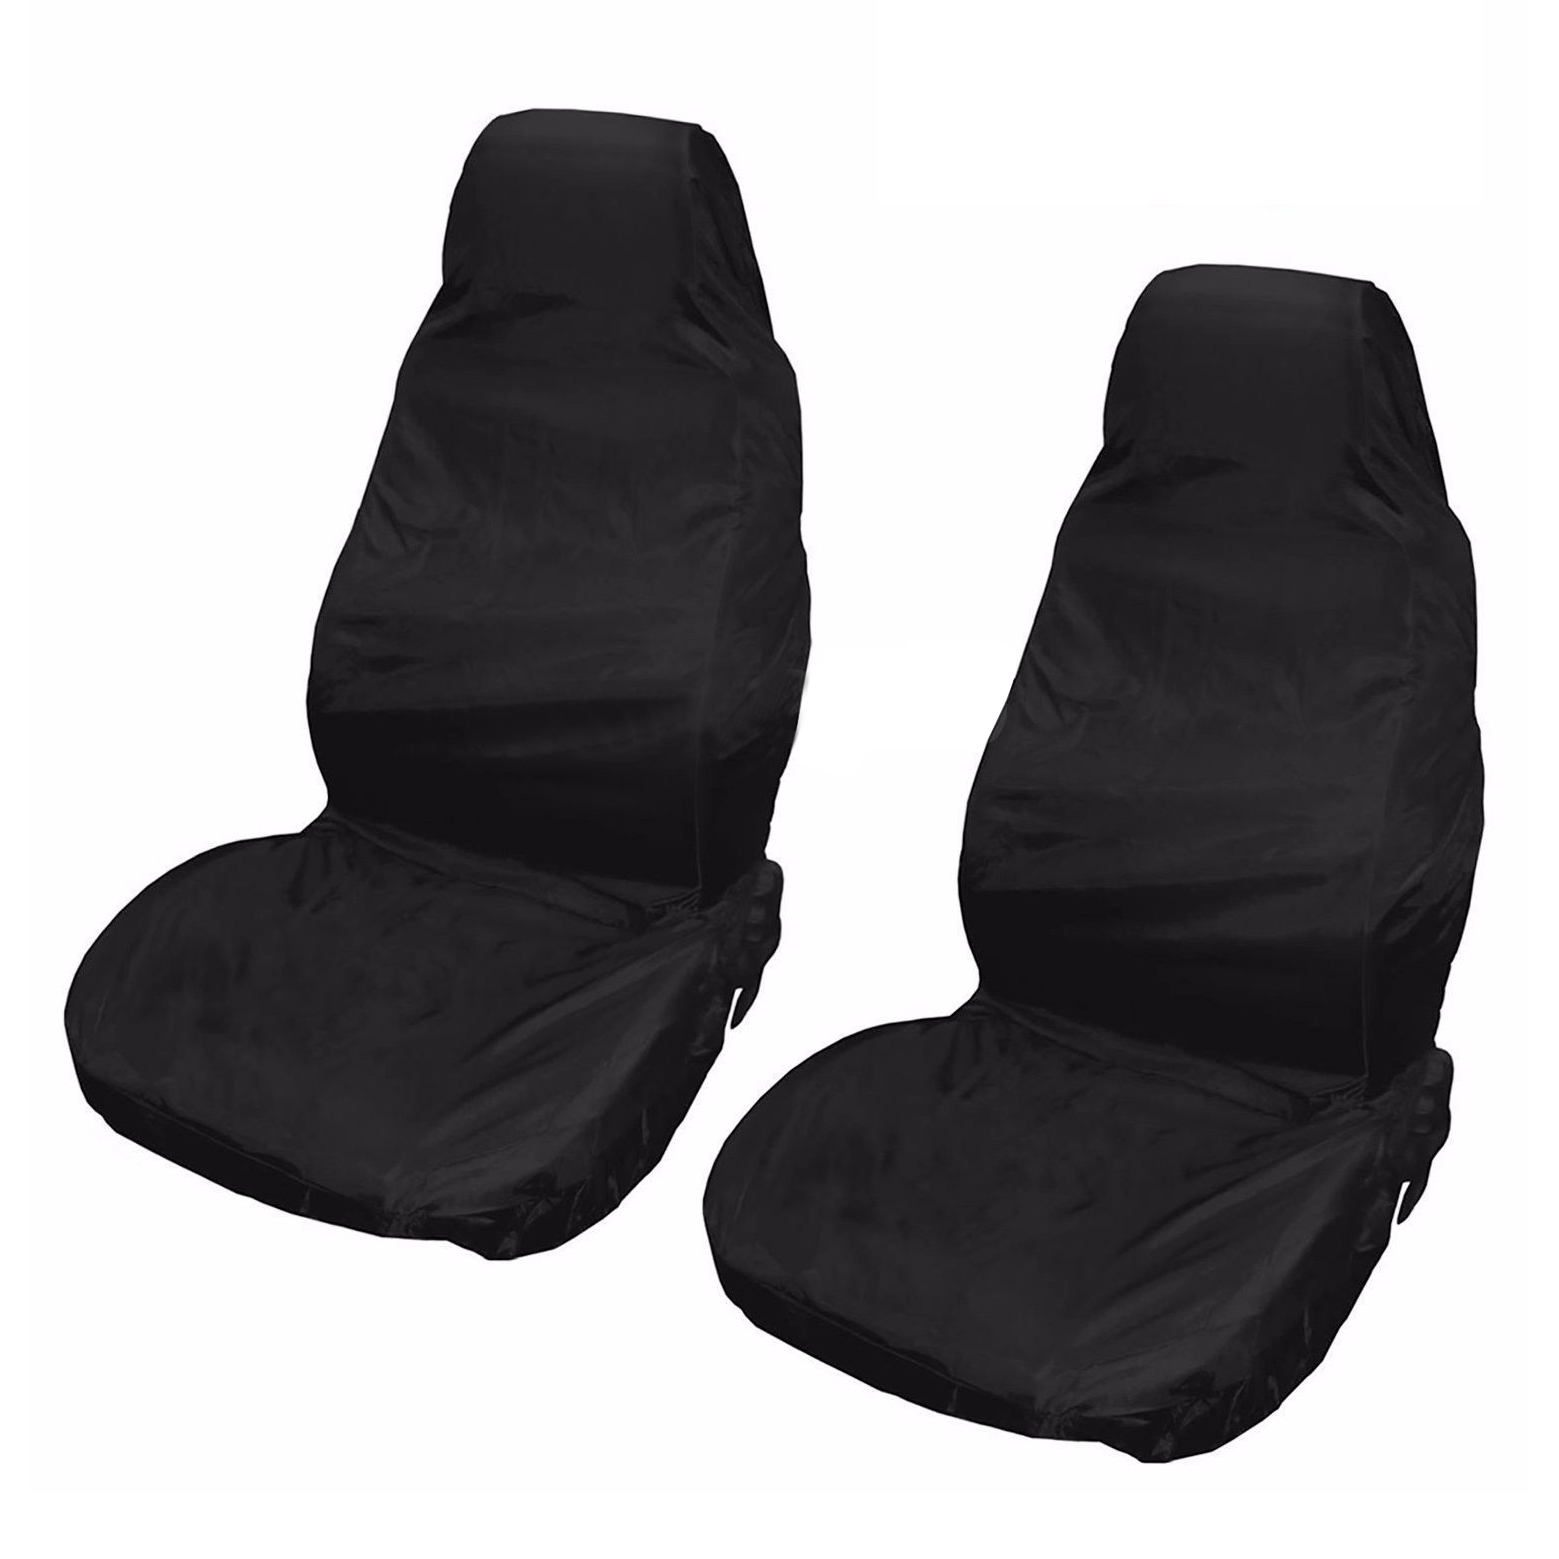 2x Universal Waterproof N710732879on Front Car Van Seat Covers Protectors Black Pair